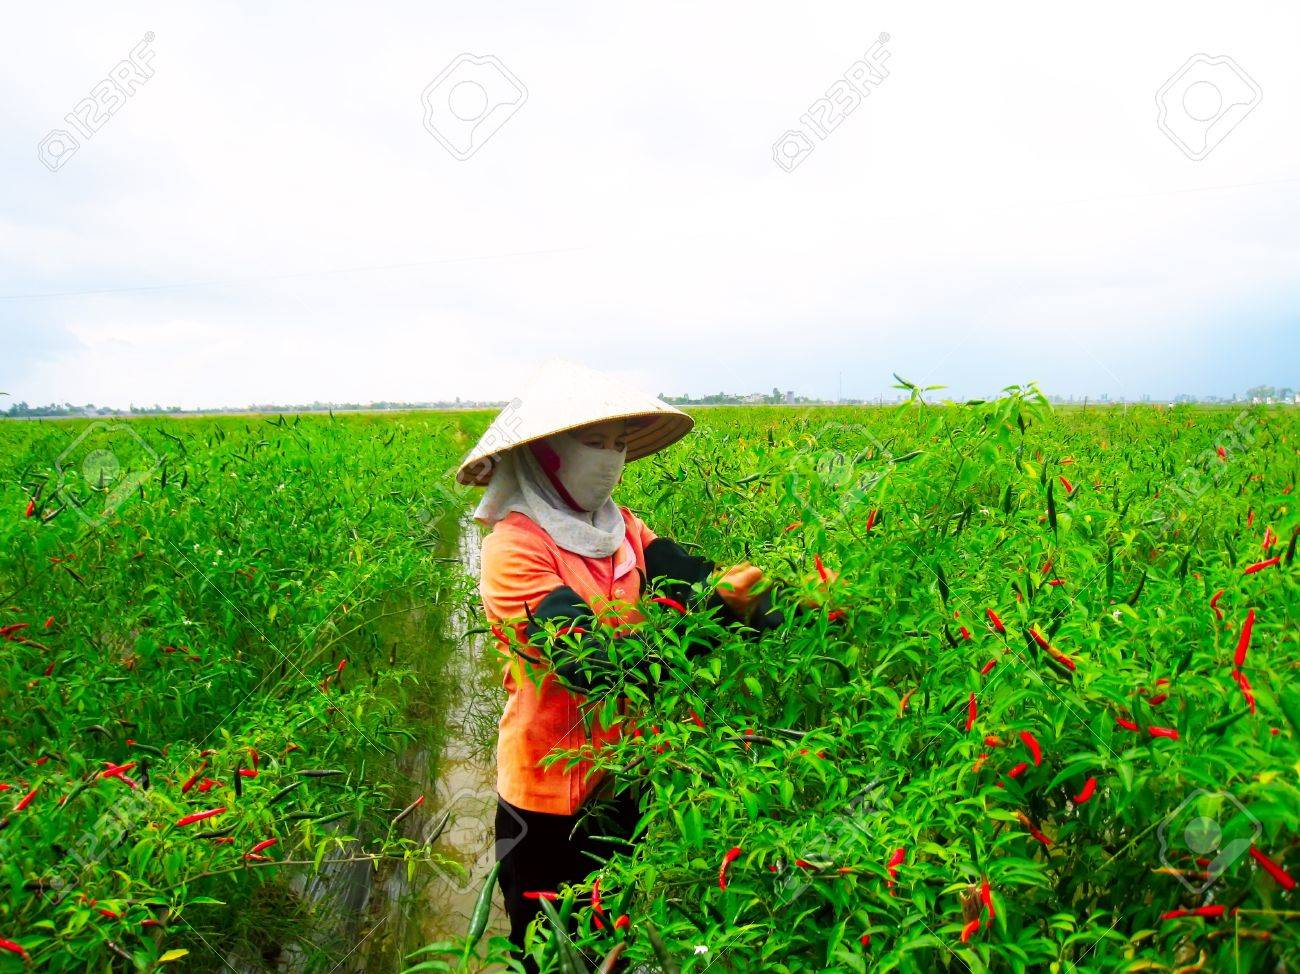 HAI DUONG, VIETNAM, July 12: Vietnamese woman farmer picking chili on the field on July 12, 2013 in Hai Duong, Red River Delta, Vietnam. After harvesting chili will sell at the market to shop for food - 20806038